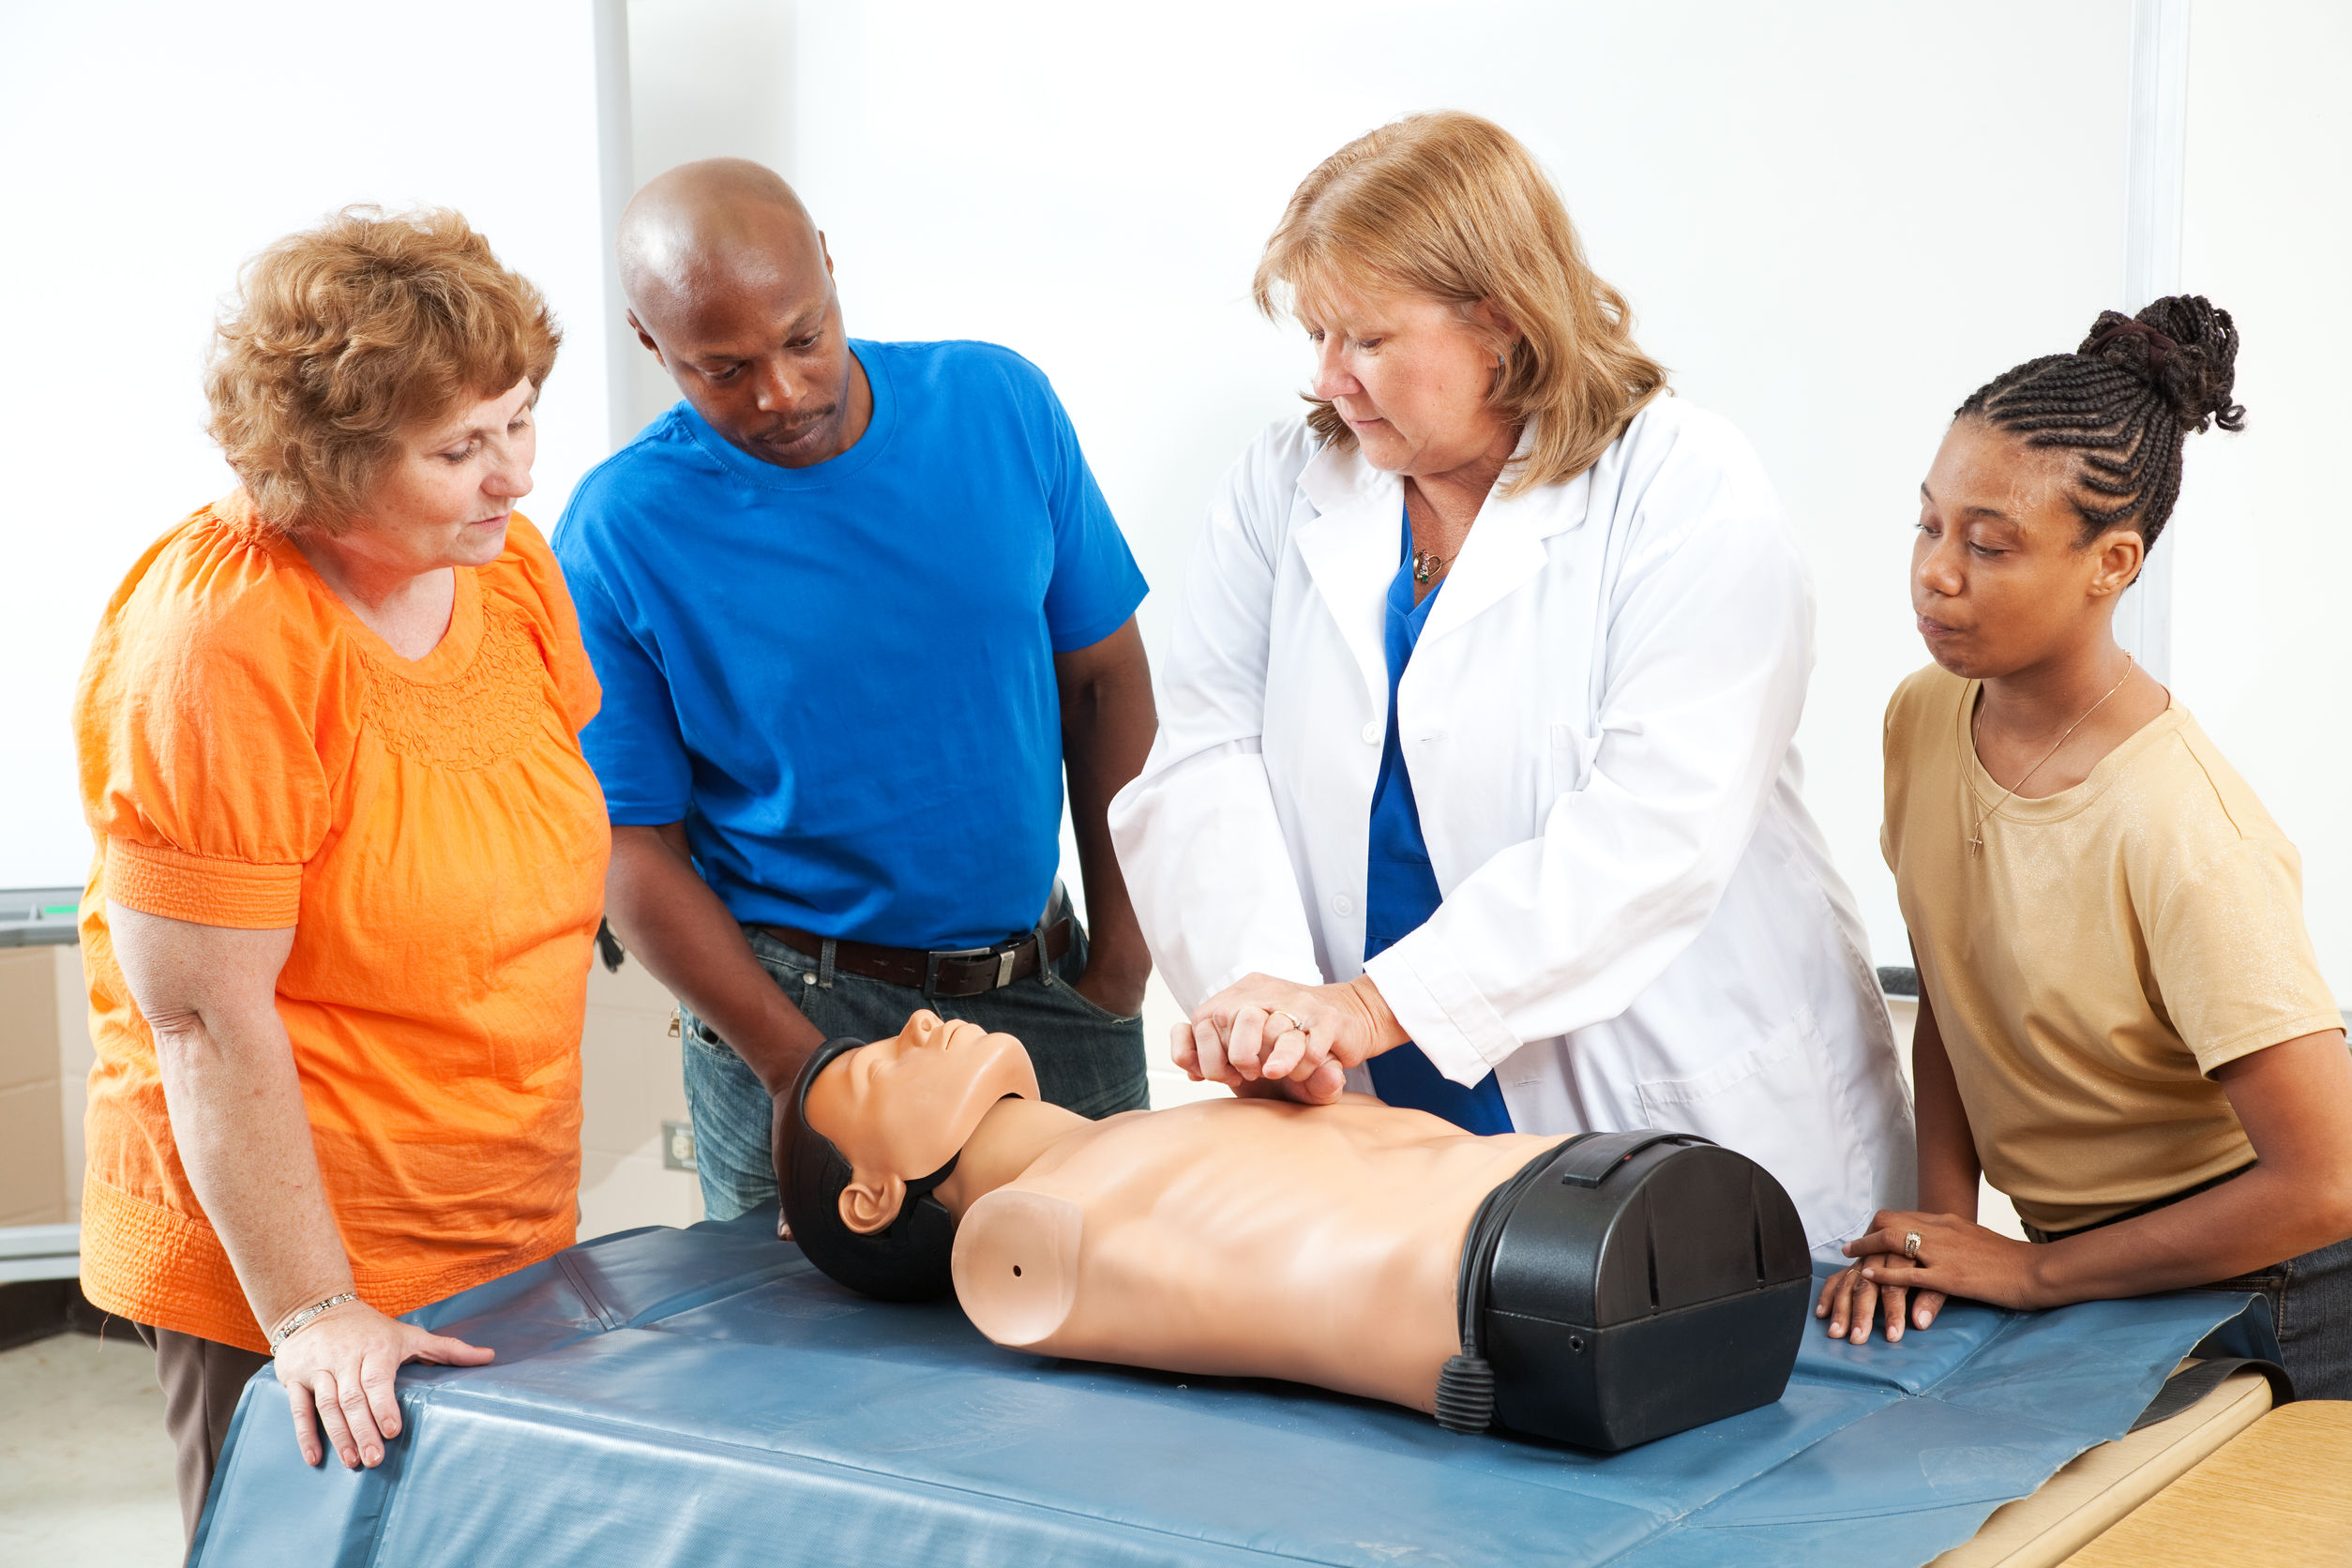 Cpr certification cpr training classes cpr first aid certificate cpr certification 1betcityfo Gallery